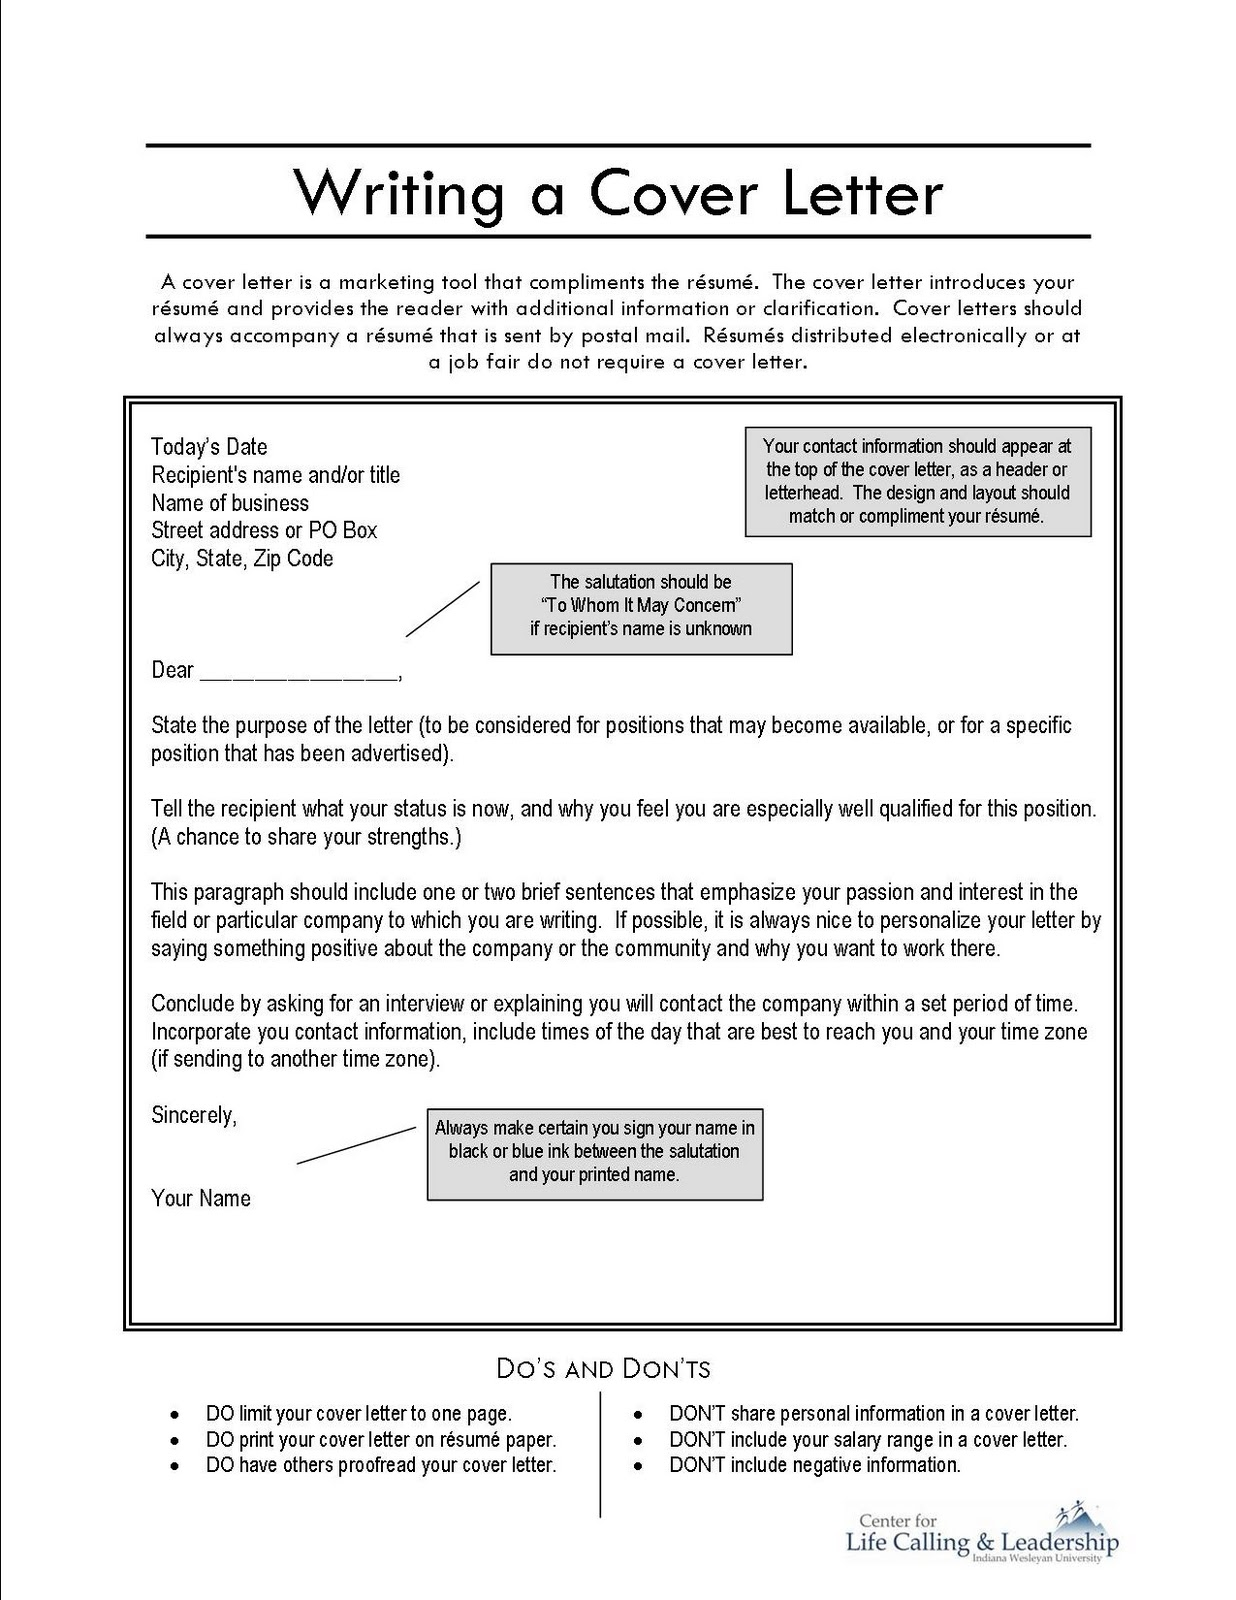 Sending A Cover Letter Via Email Examples Ncqik Limdns Org Free Resume Cover  Letters Microsoft Word  What Is A Cover Letter To A Resume